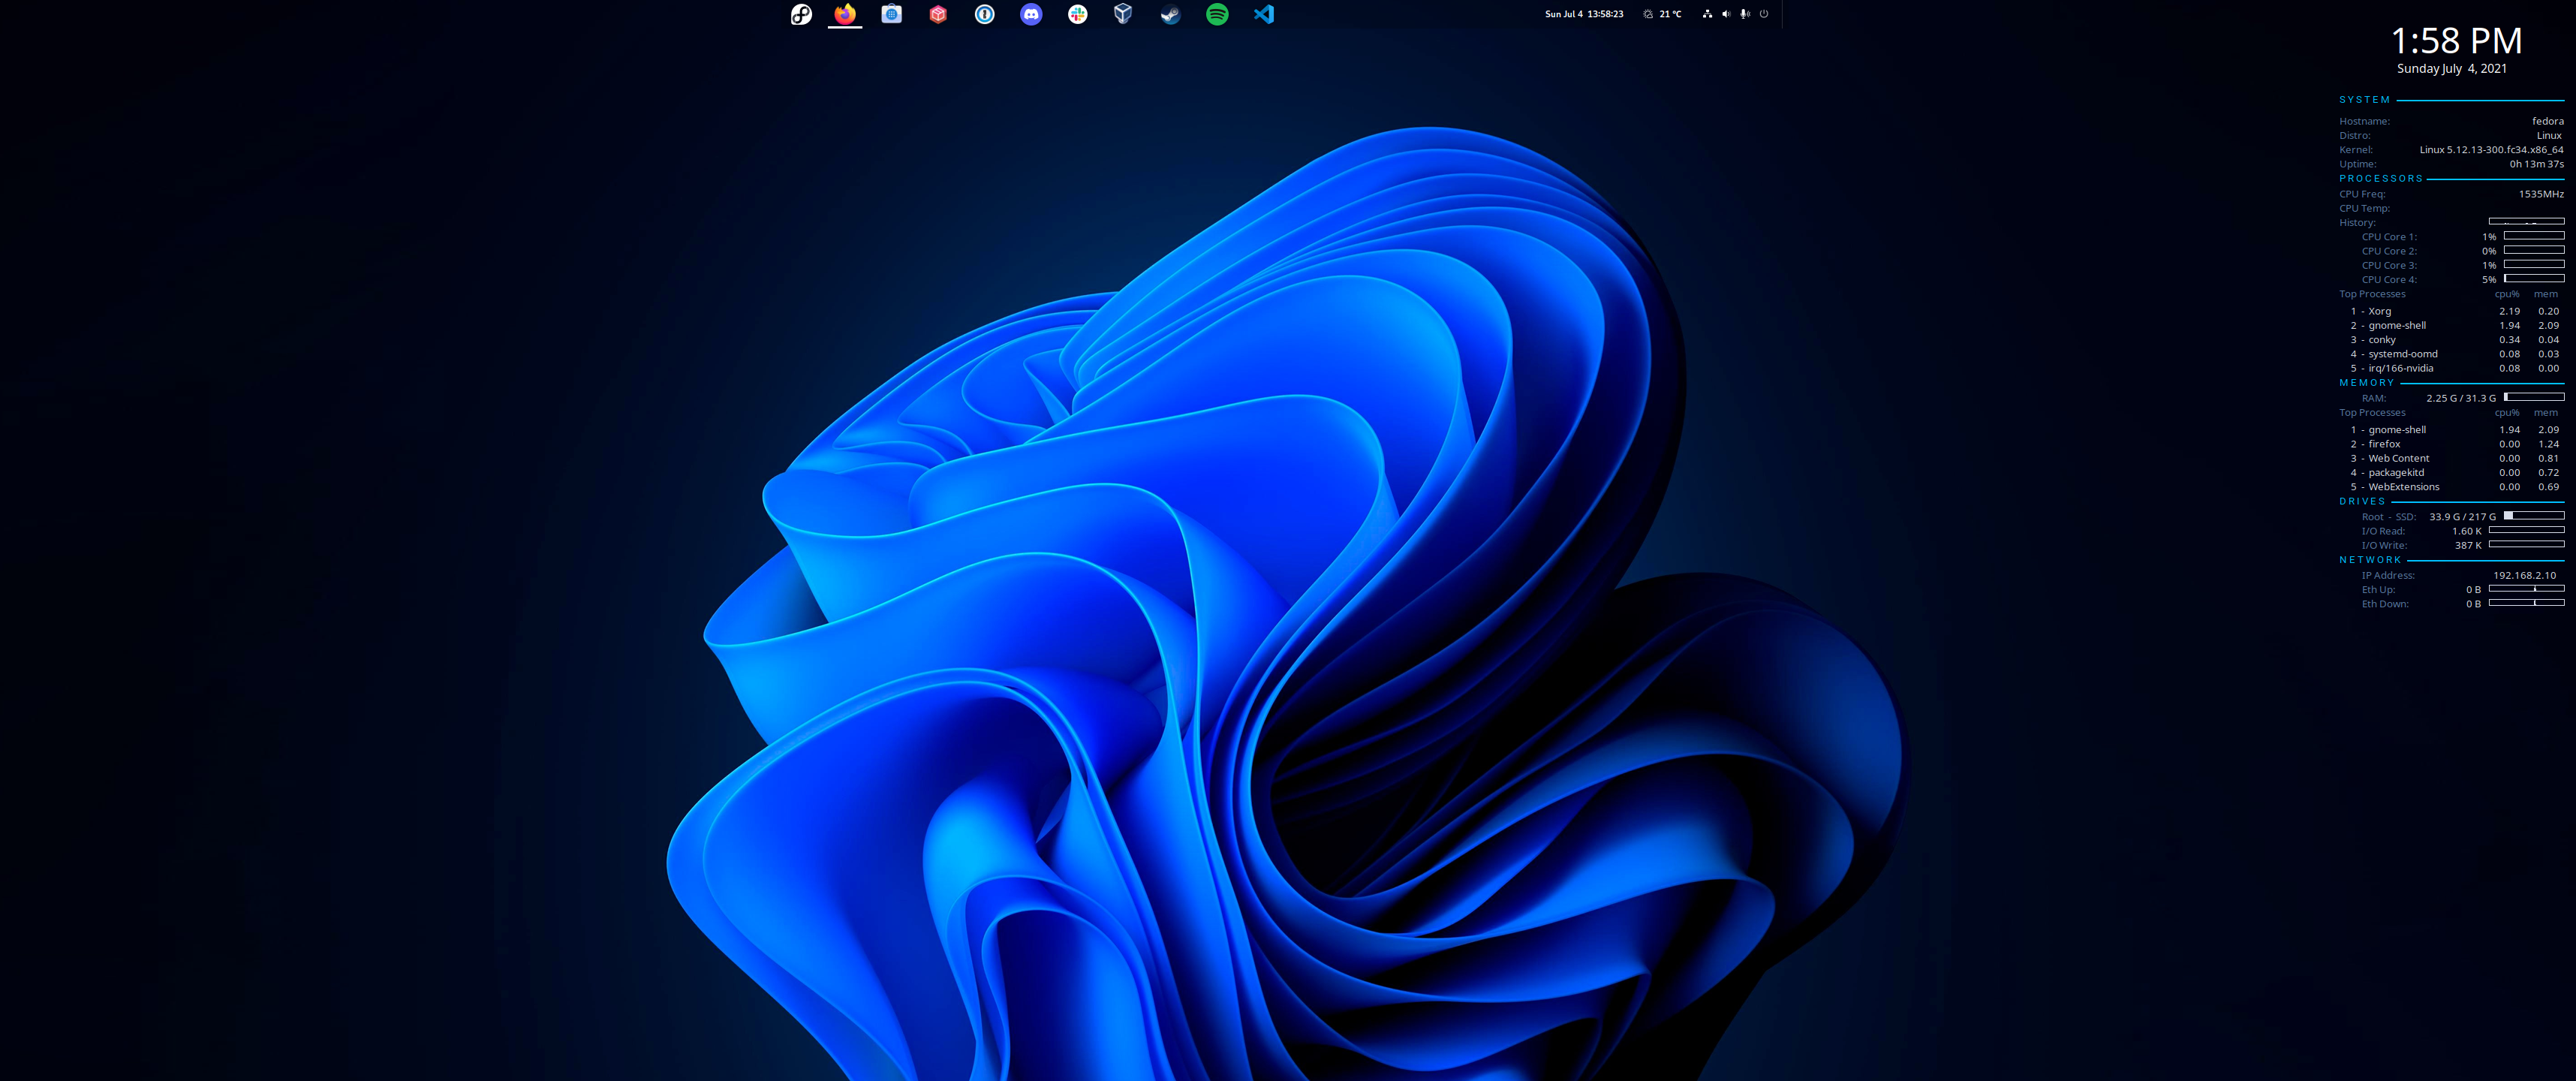 Screenshot from 2021-07-04 13-58-14.png